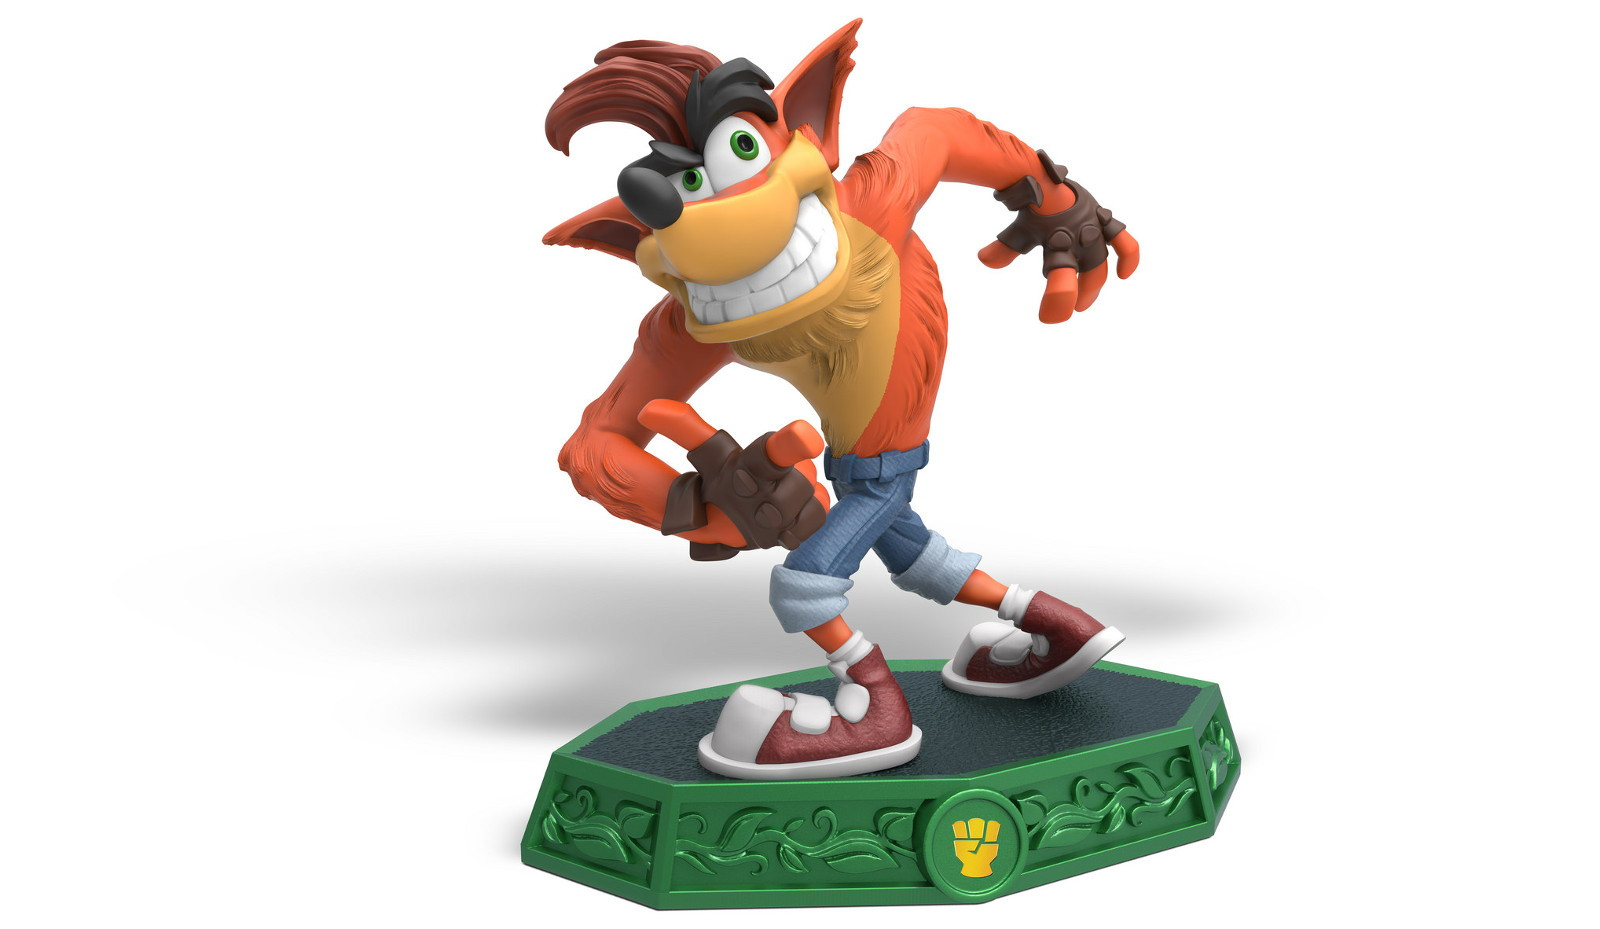 Crash Bandicoot toy